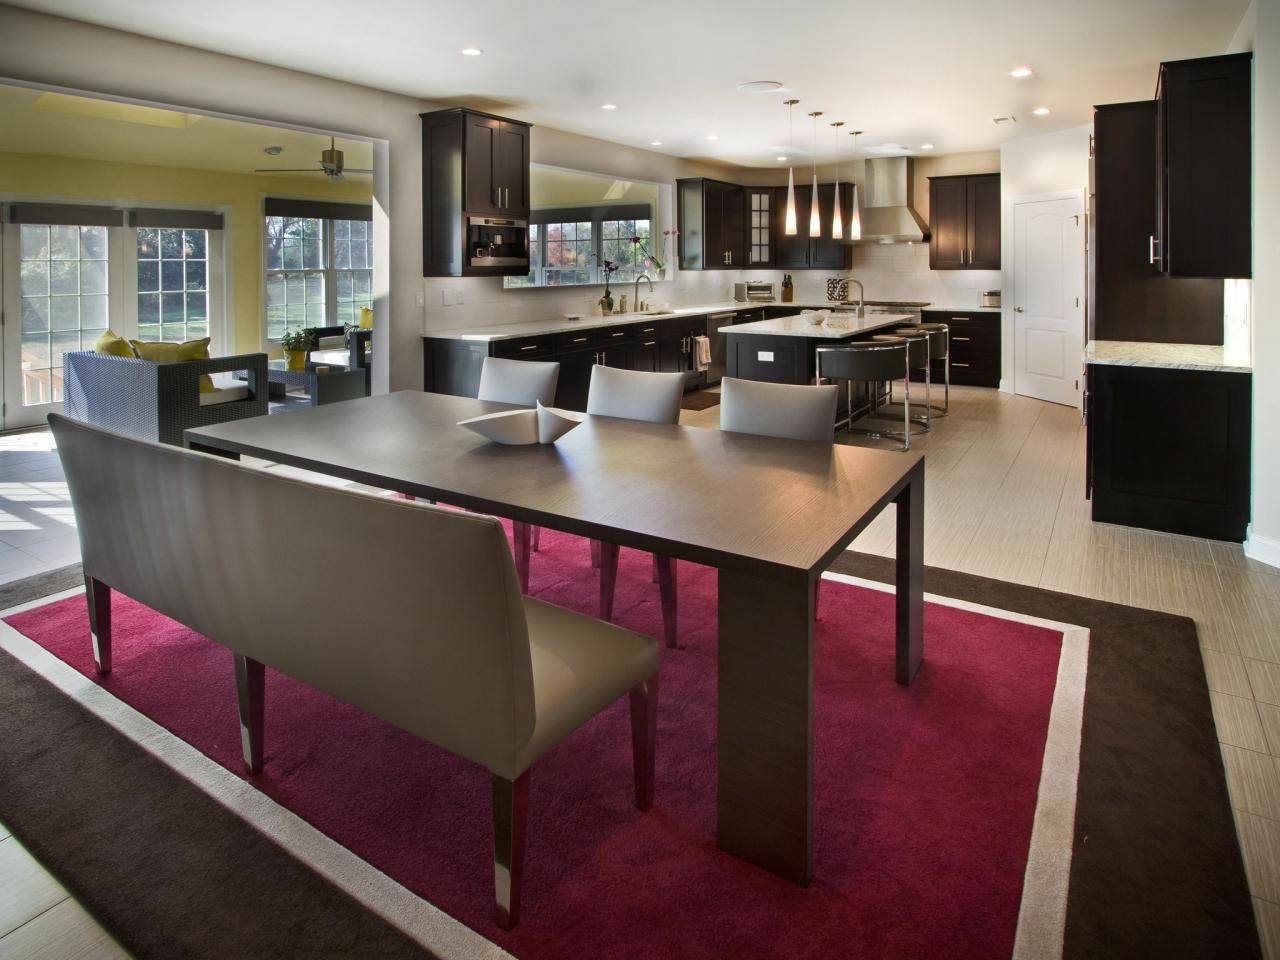 Sleek, modern elegance rules the day in this contemporary New Jersey kitchen. Clean-lined cabinetry in an ebony stain pops against the light-colored countertops and backsplash.